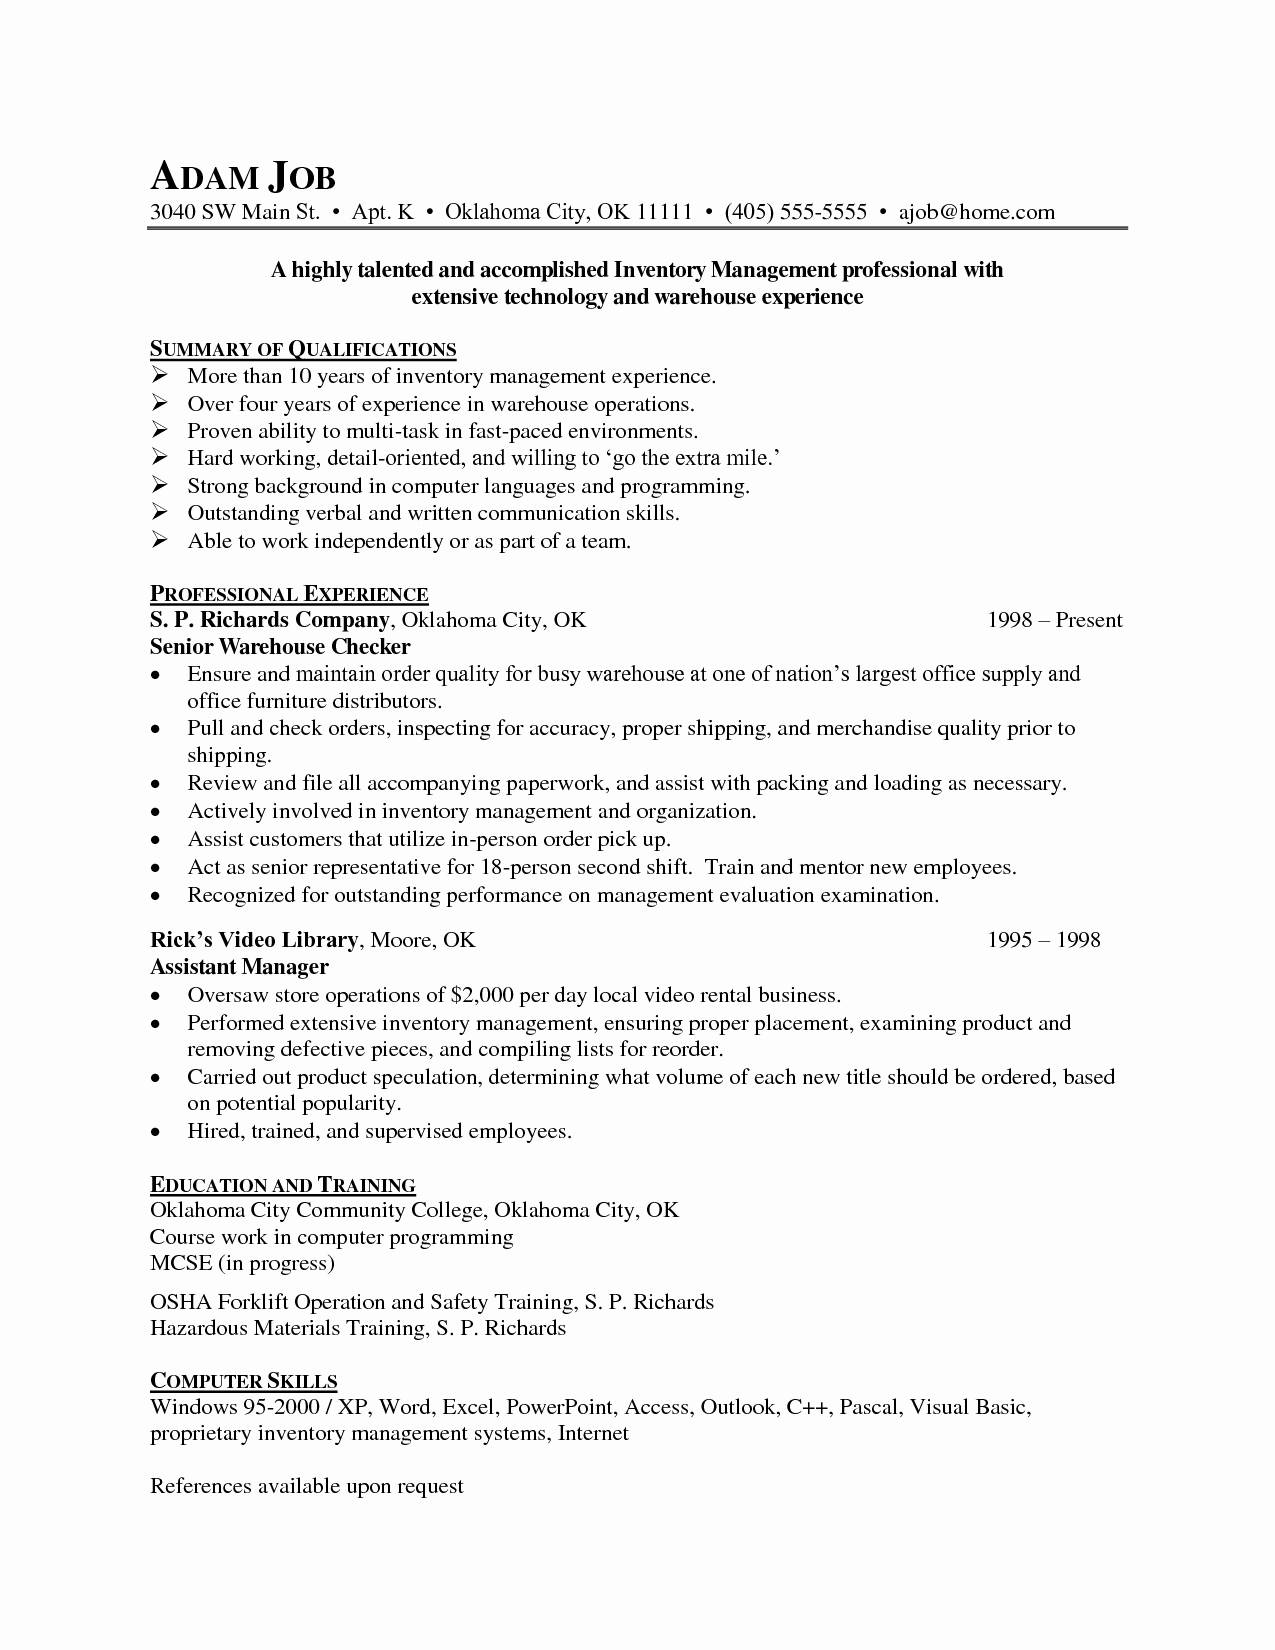 Logistics Manager Resume Template - Resumes #495 | Resume